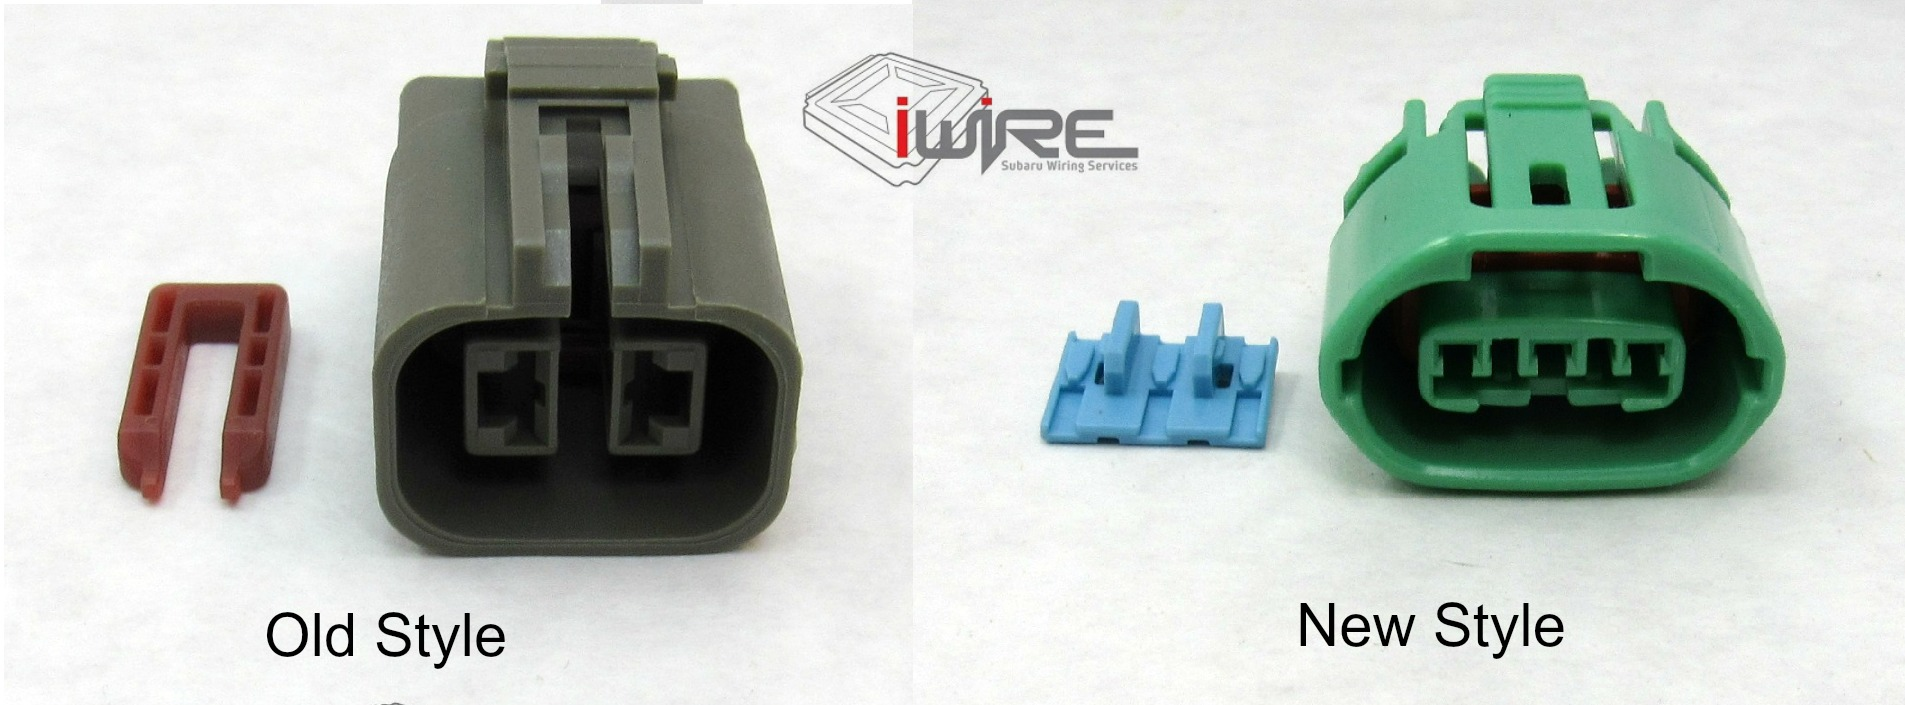 subaru alternator plugs | subaru wiring harnesses and adapters | iwire subaru  wiring services